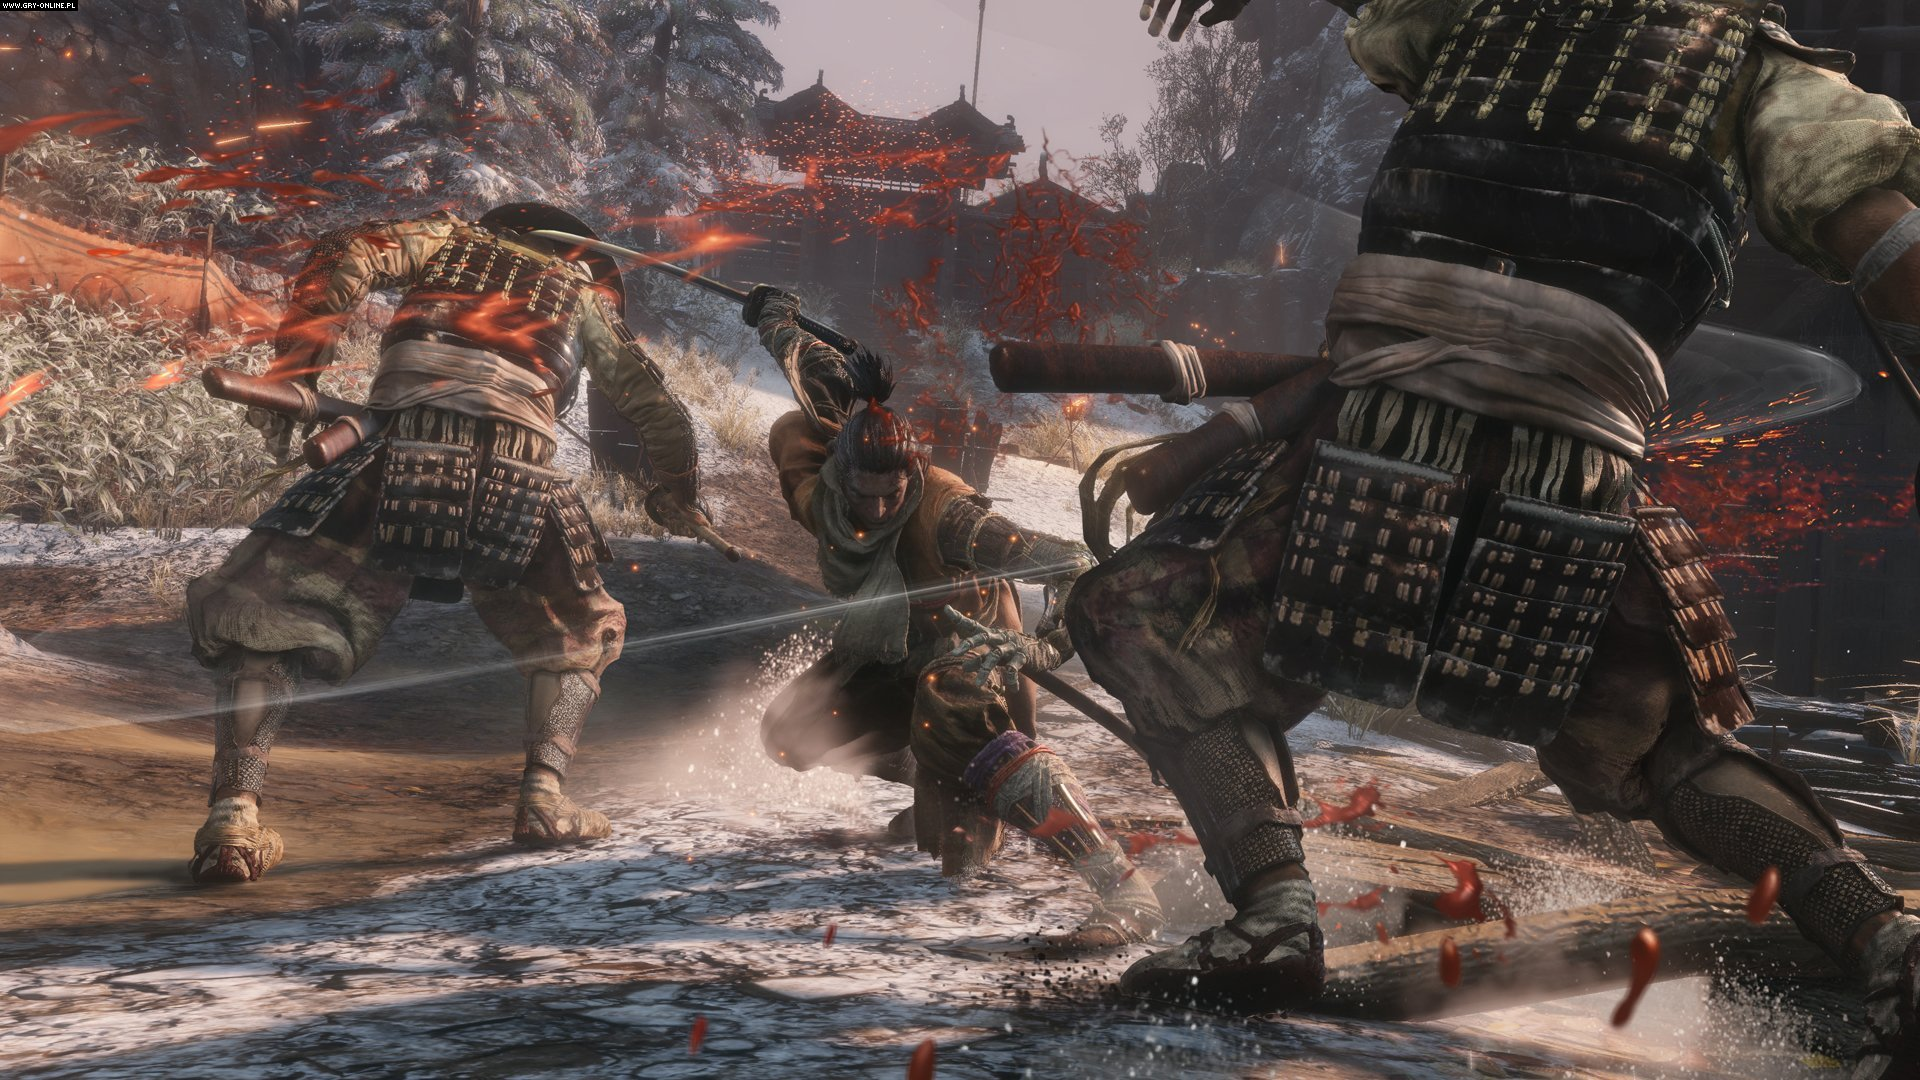 Sekiro: Shadows Die Twice PC, PS4, XONE Games Image 1/29, FromSoftware, Activision Blizzard